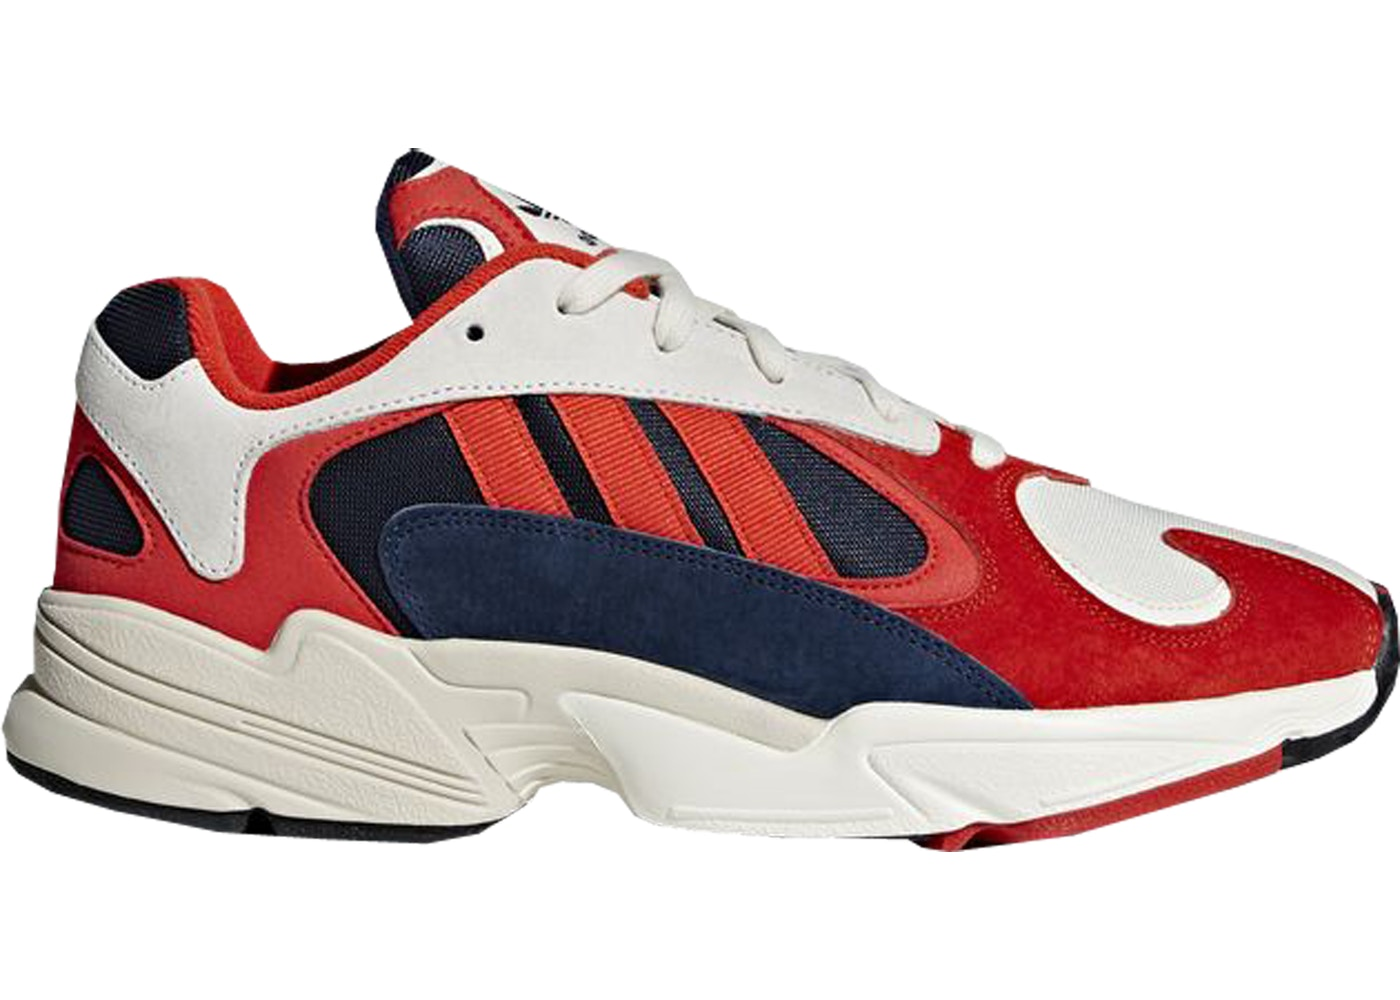 351be6d80a77c9 adidas Yung-1 Collegiate Navy - B37615